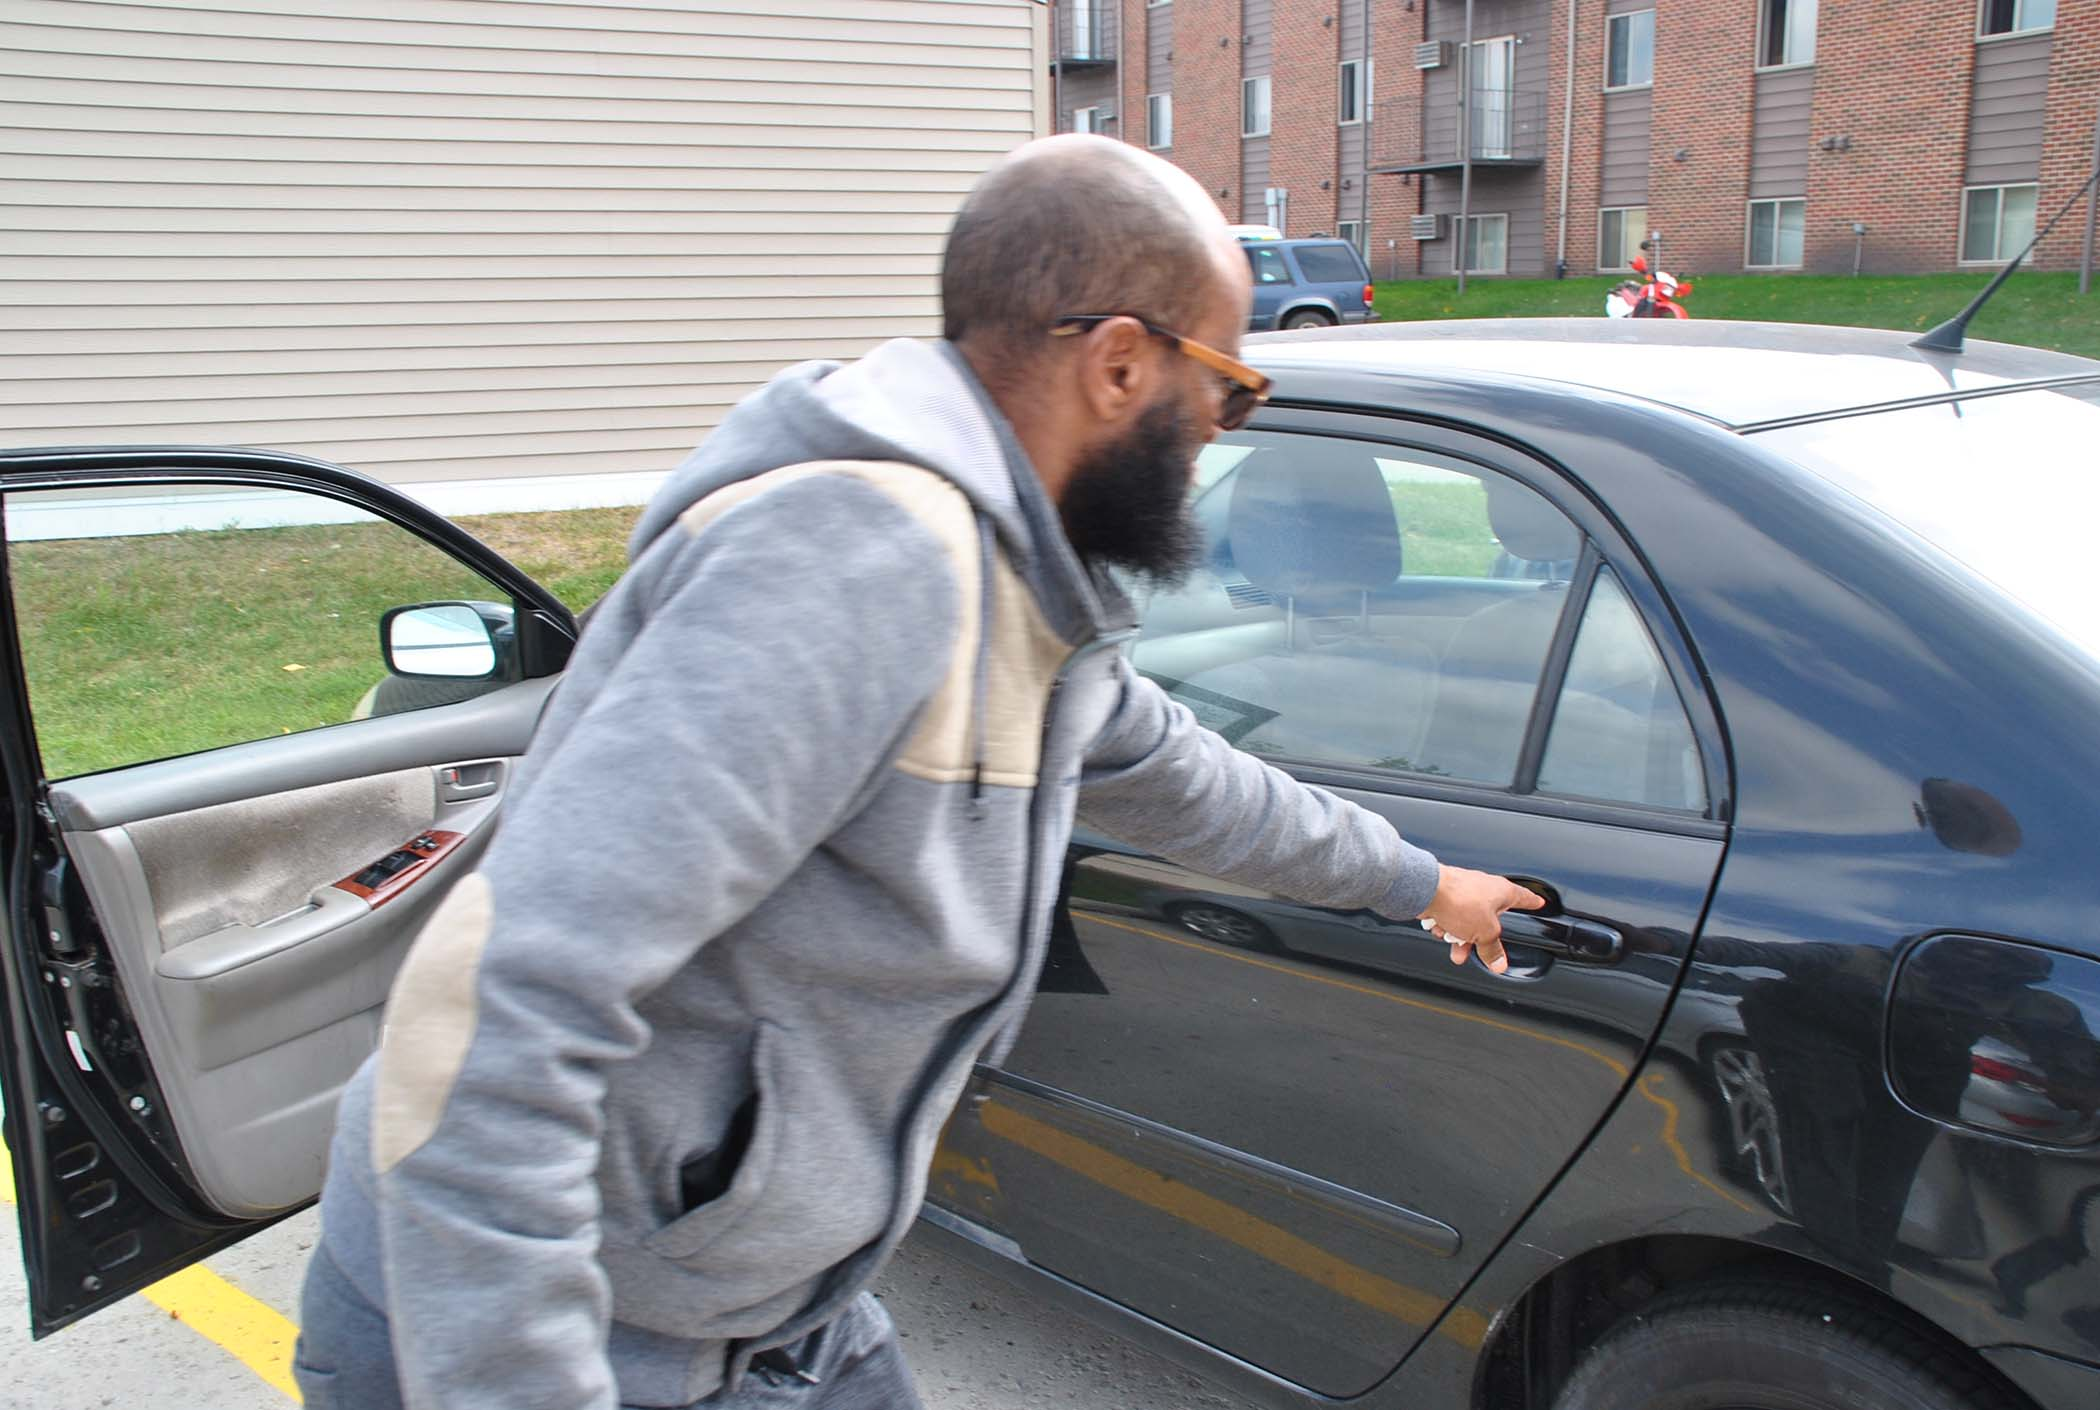 Yusuf Mohamed preparing to open his car's door - photo by C.S. Hagen